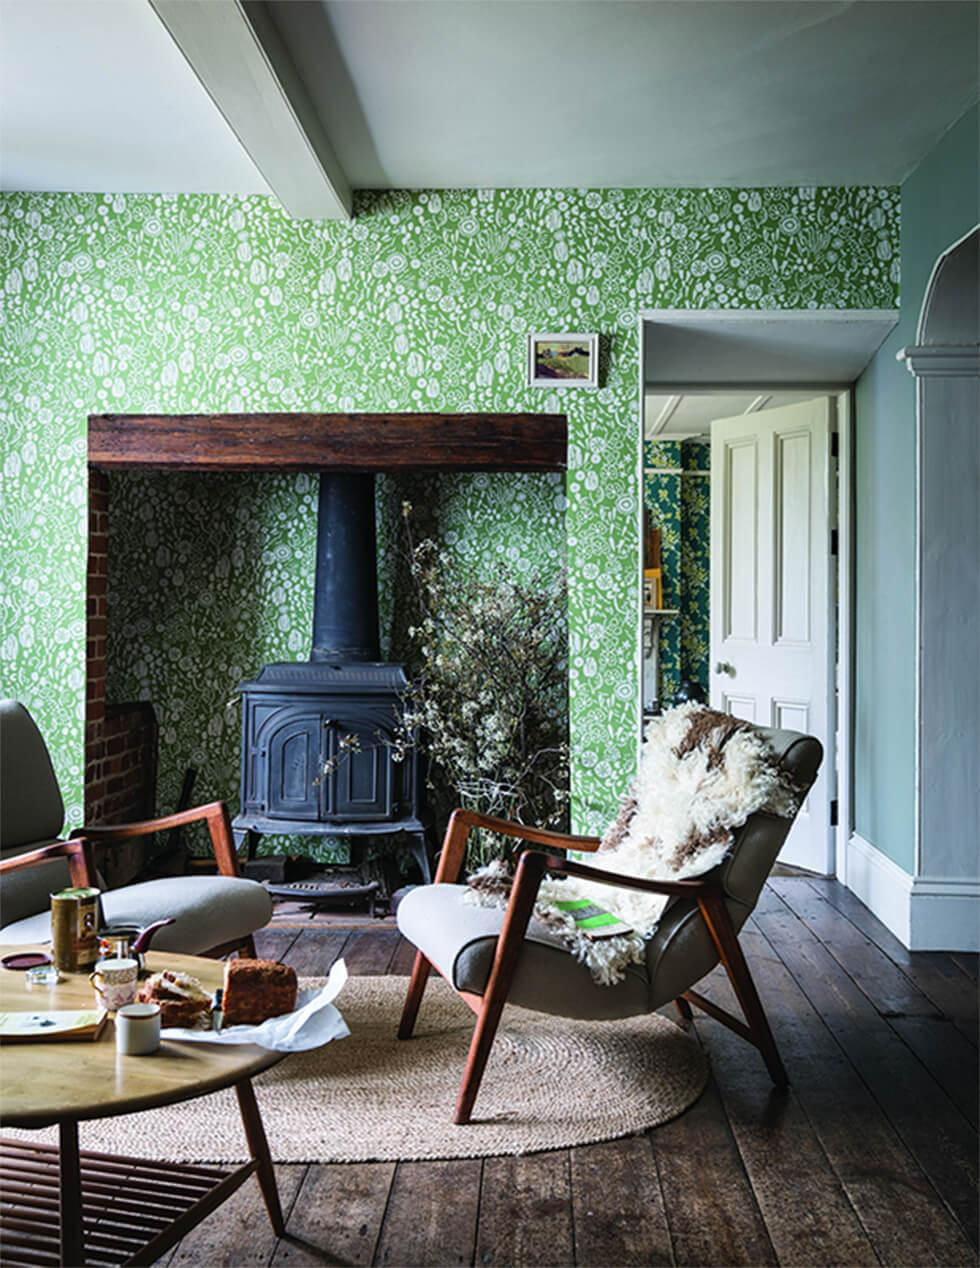 Green country living room with bright printed wallpaper, furnace, and low dark wood armchairs